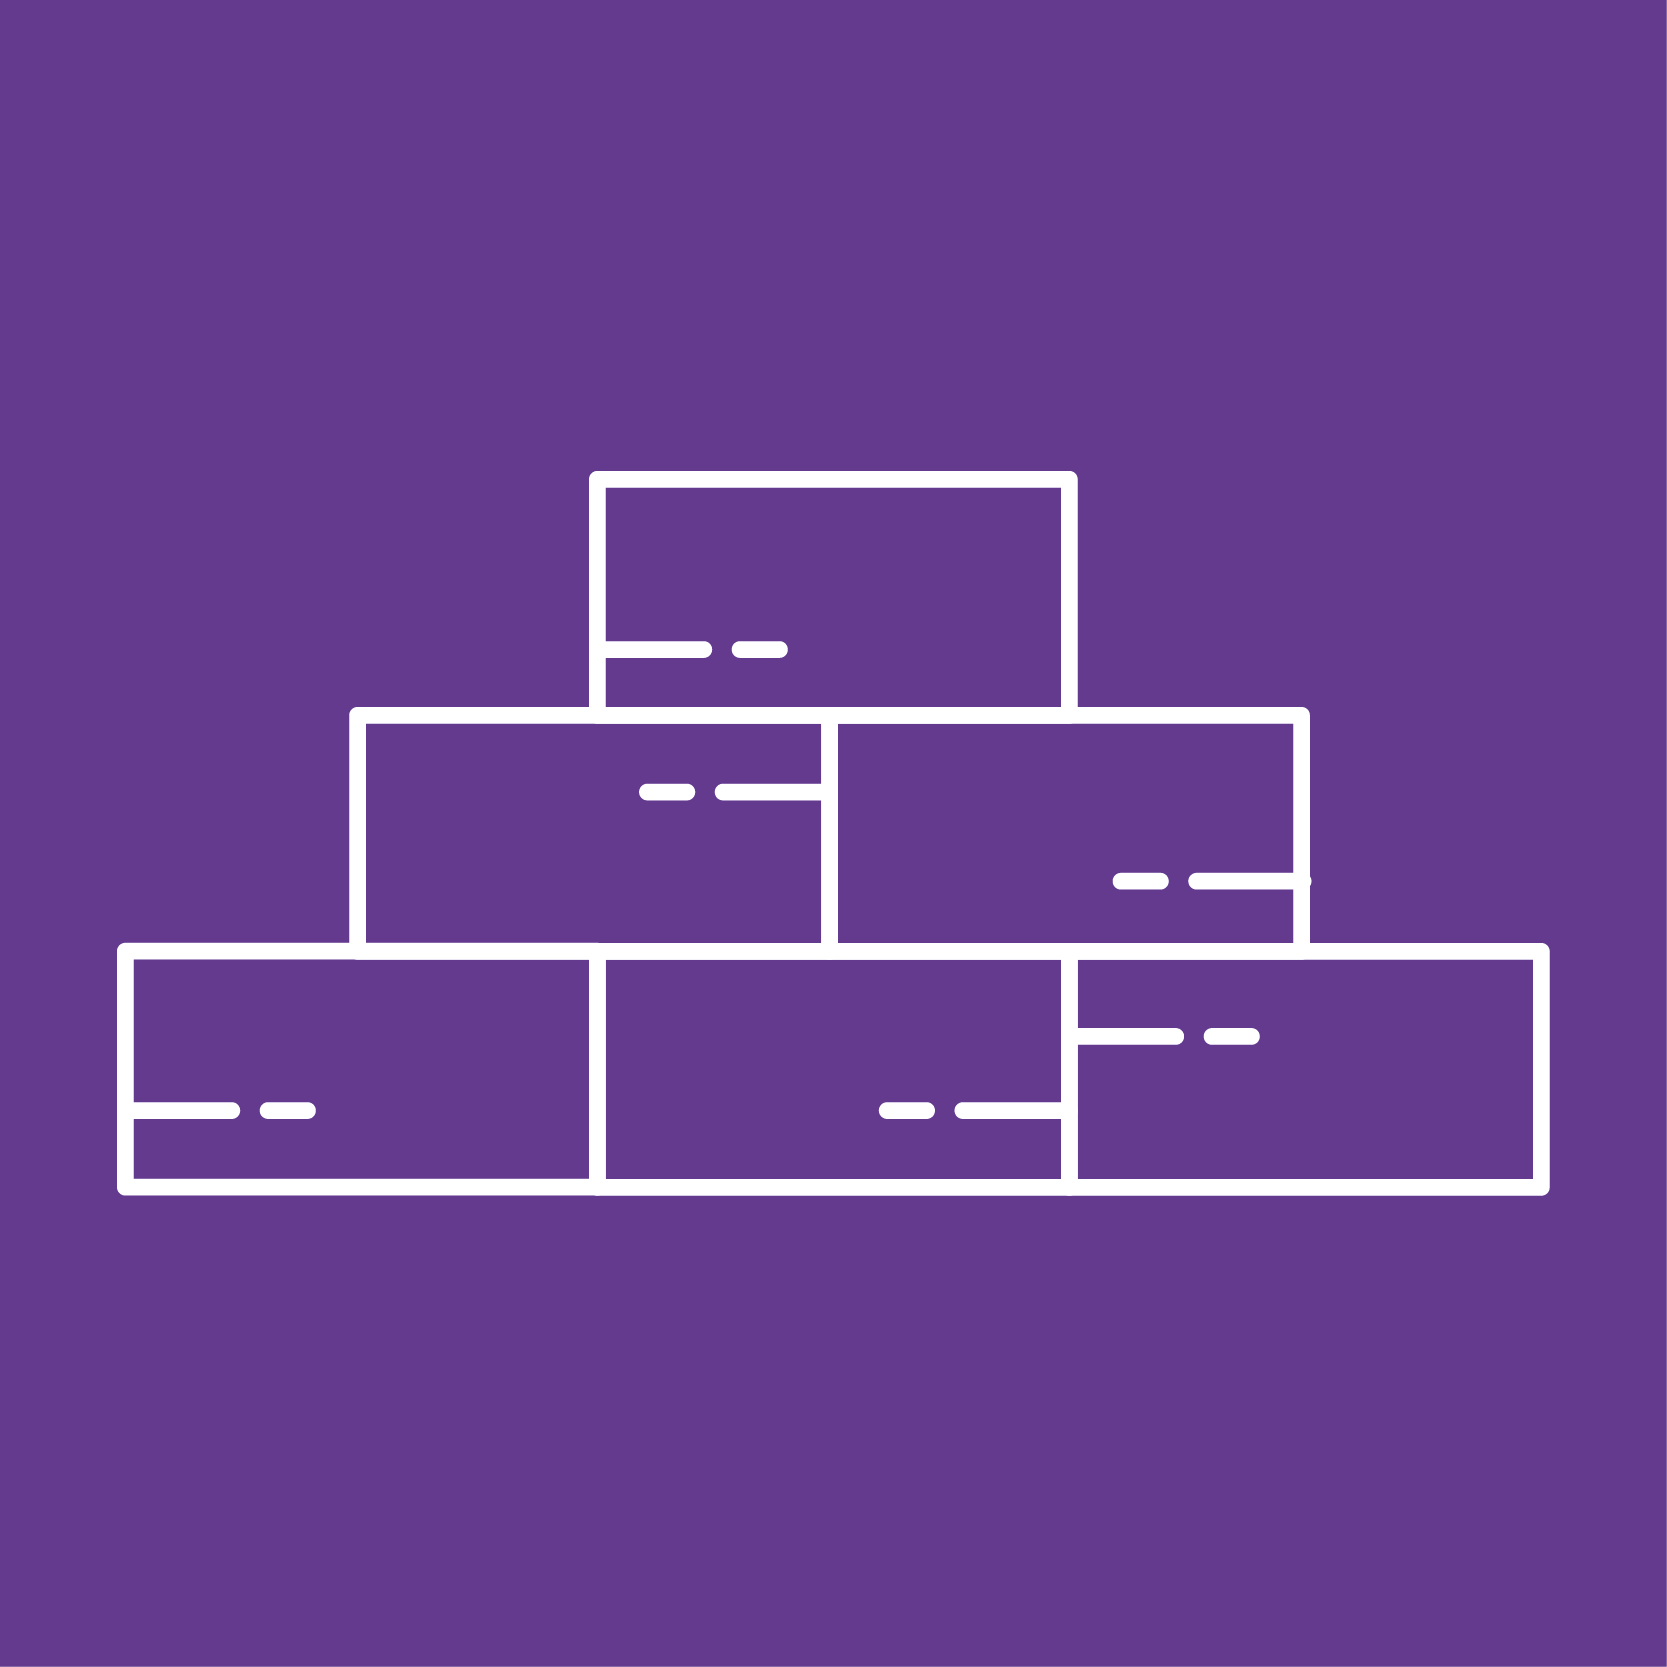 Purple square with a graphic of stacked bricks